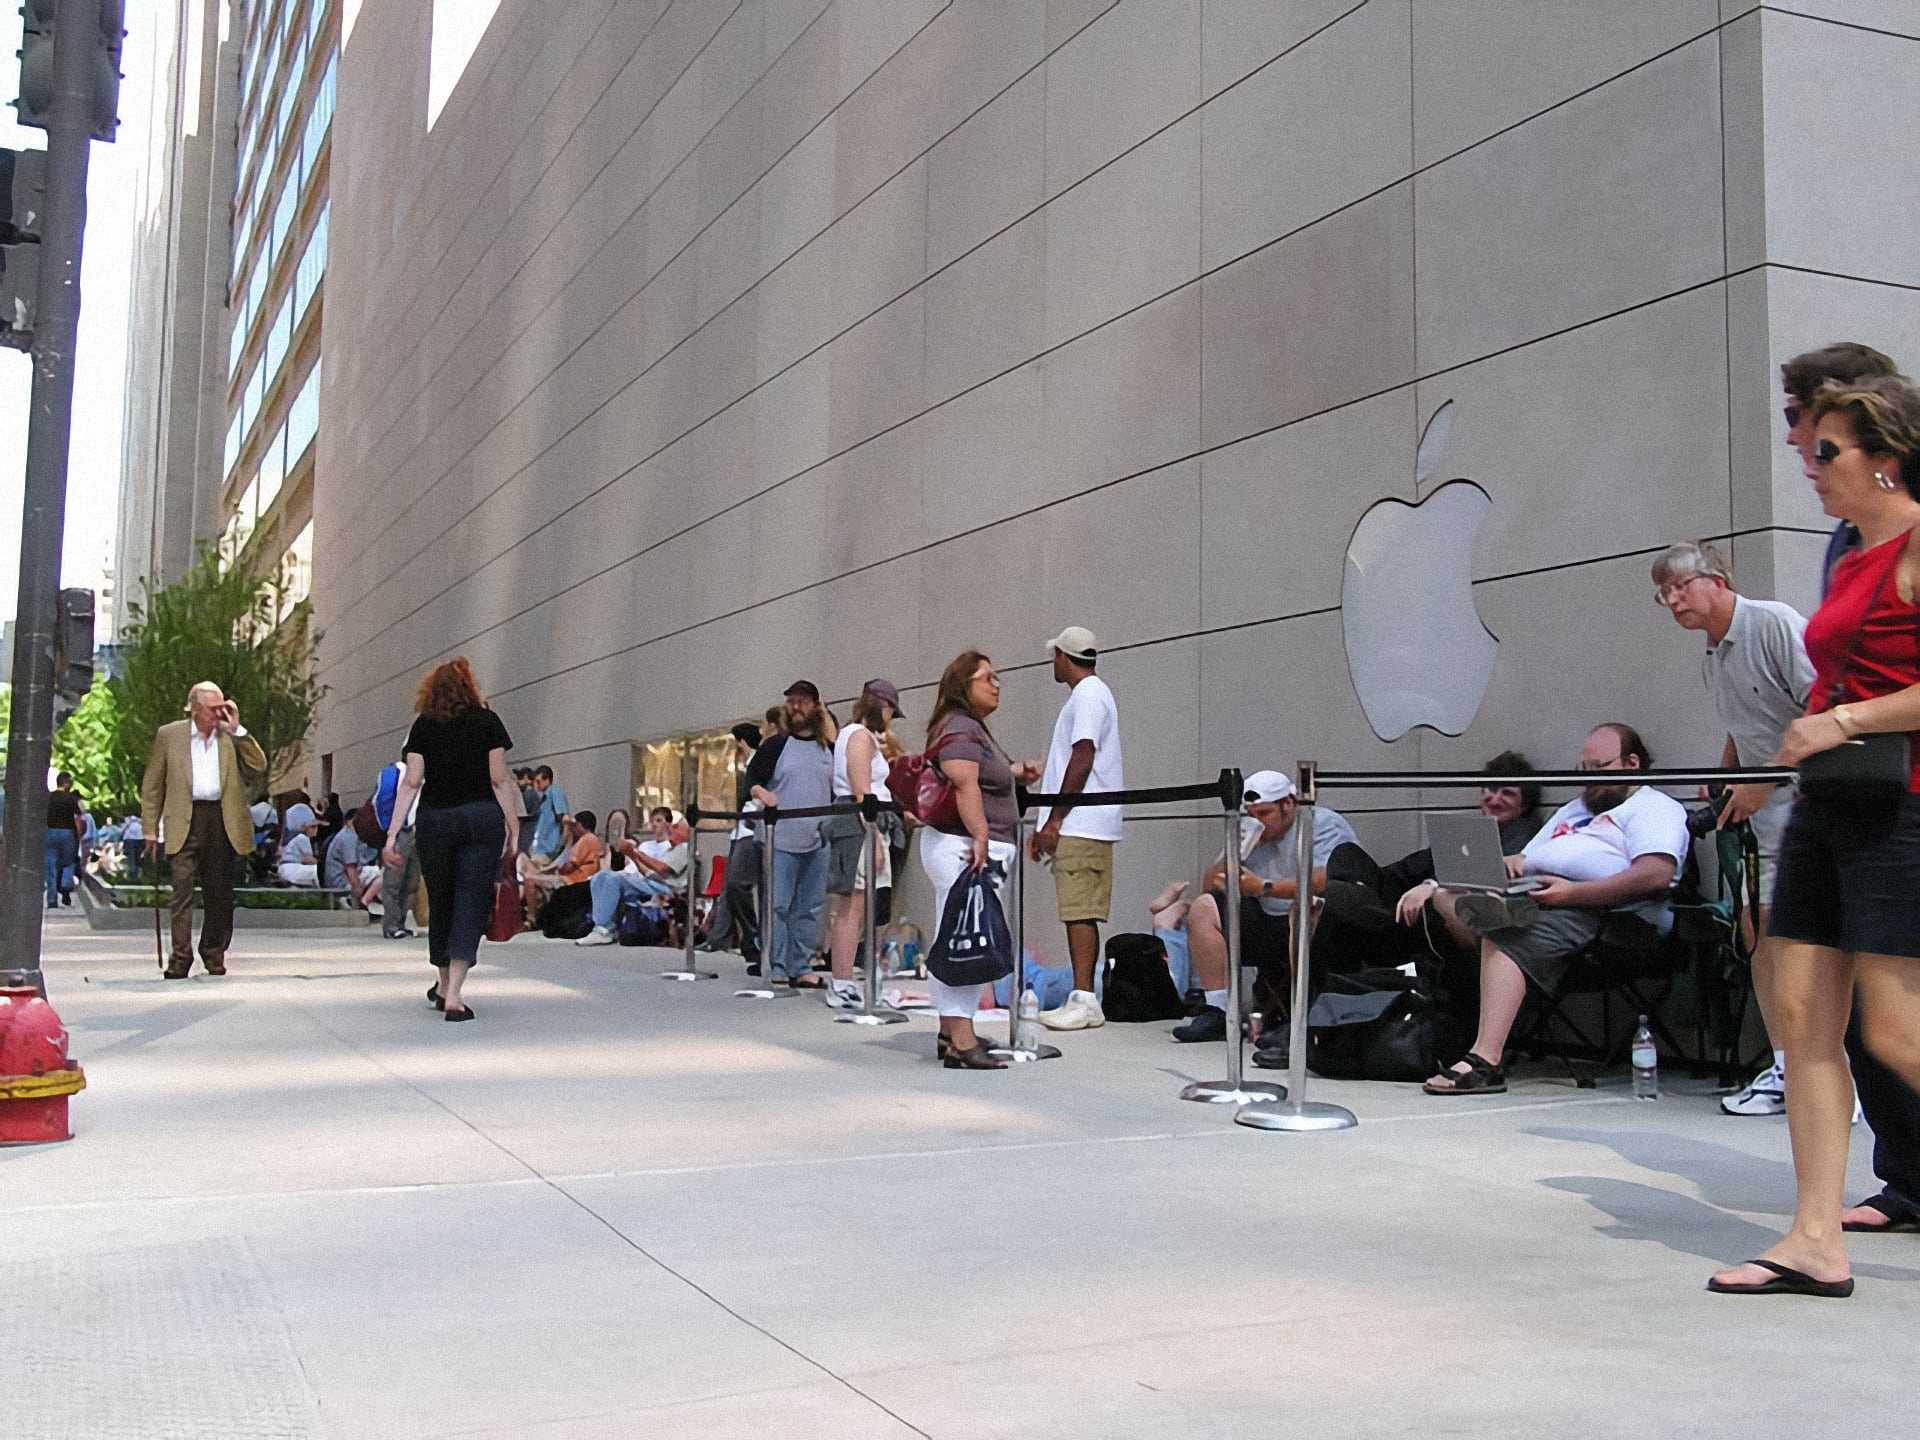 Customers wait outside behind stanchions to enter Apple North Michigan Avenue.